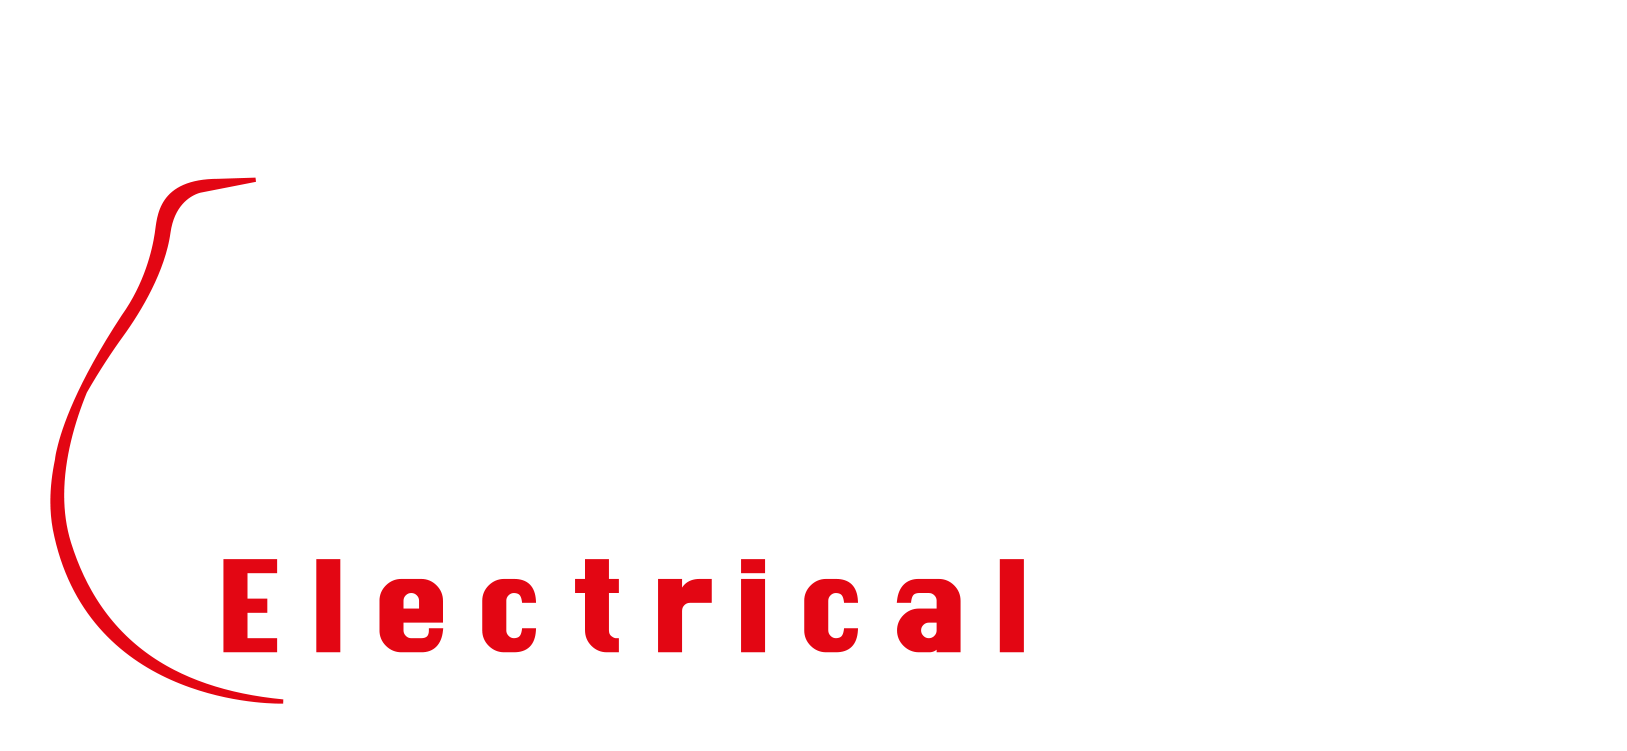 Hocking Electrical